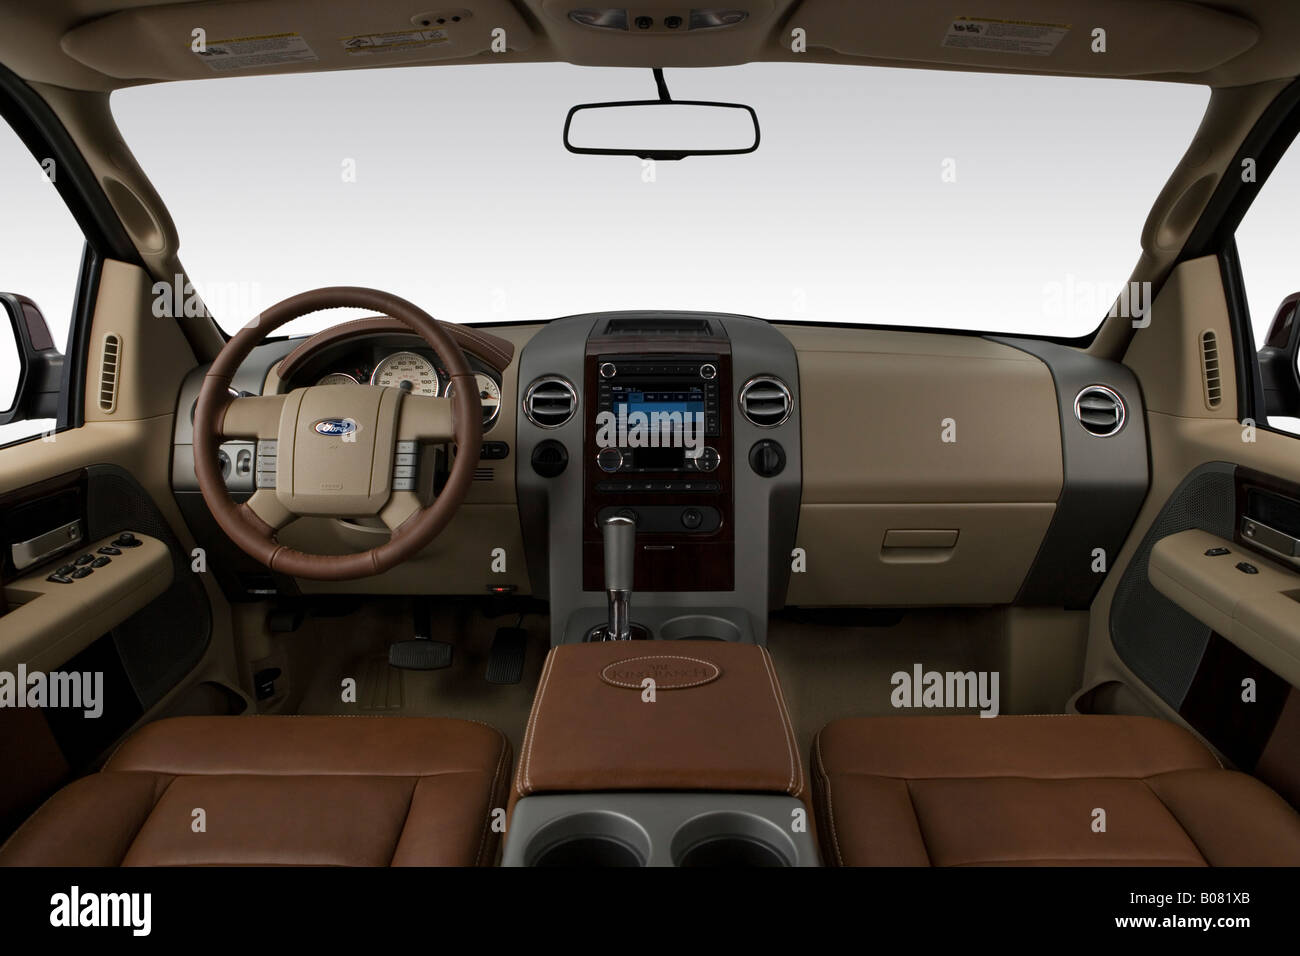 2008 Ford F150 Extended Cab >> 2008 Ford F-150 Lariat King Ranch in Red - Dashboard, center console Stock Photo, Royalty Free ...